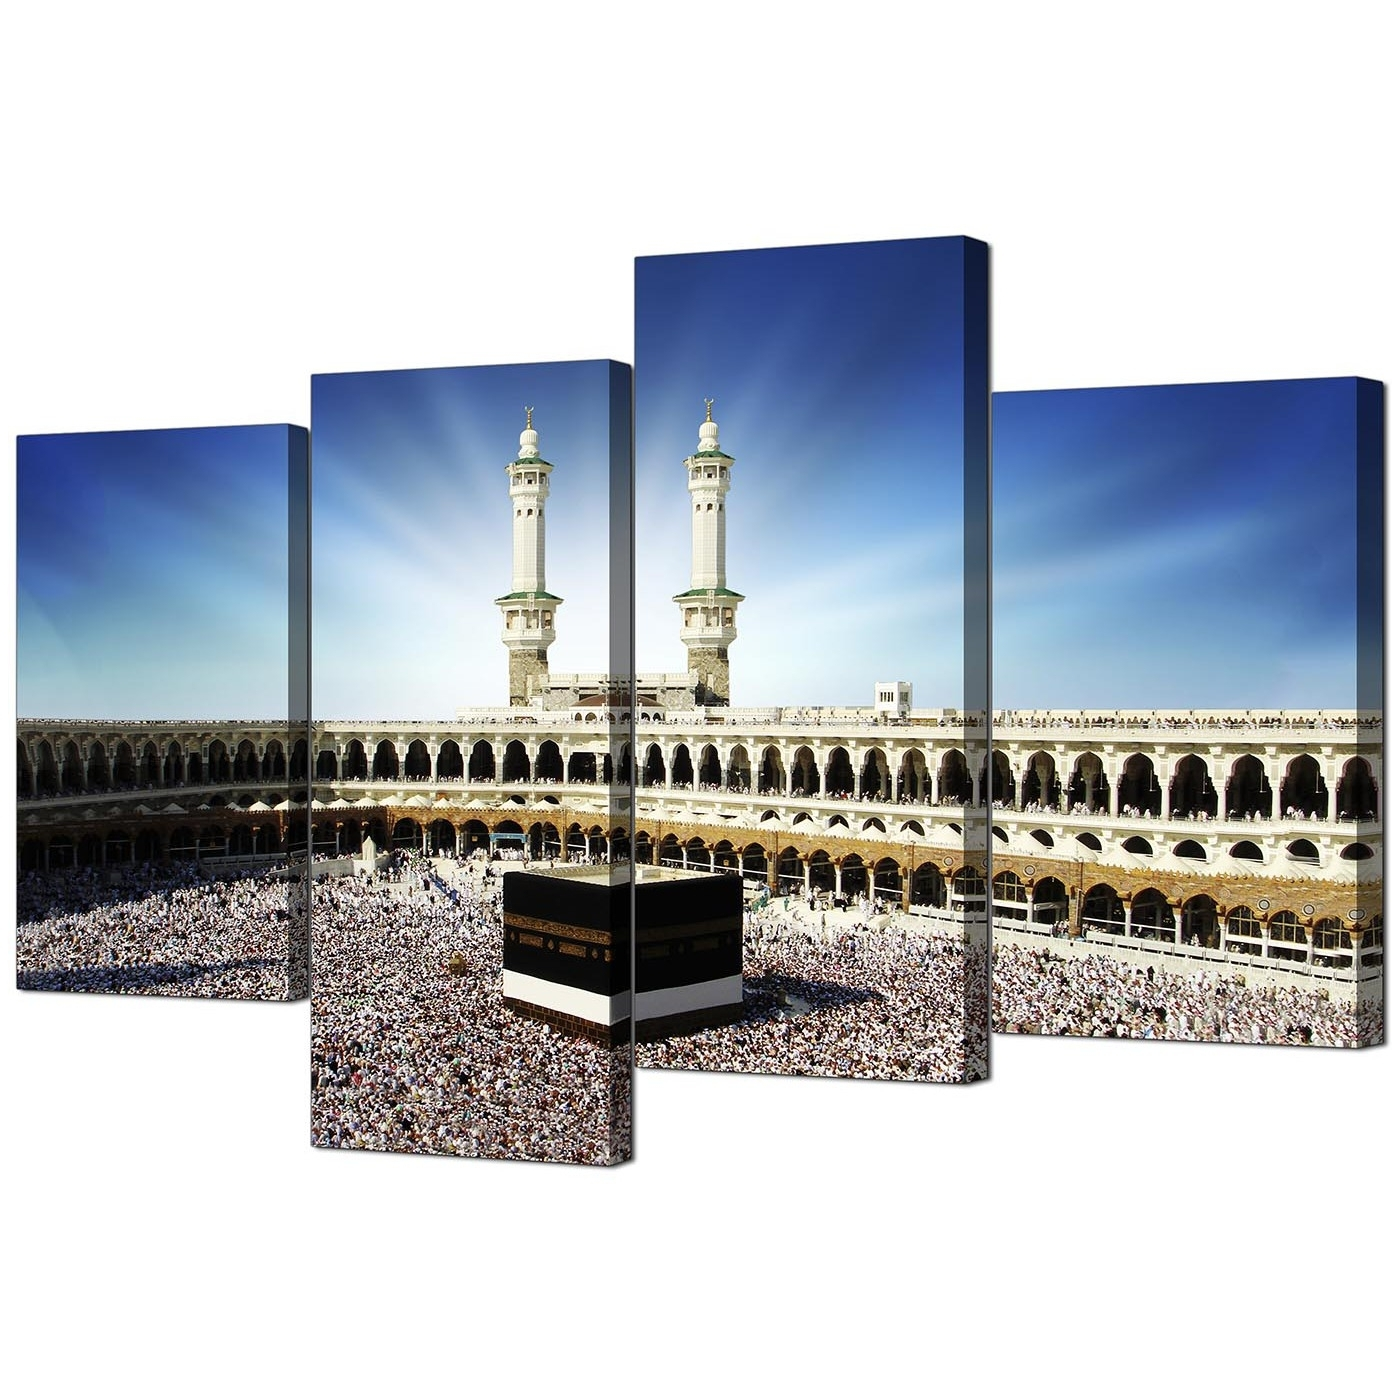 Islamic Canvas Wall Art For Well Liked Islamic Canvas Wall Art Of Kaaba Hajj In Mecca For Muslims – Set Of (View 2 of 15)